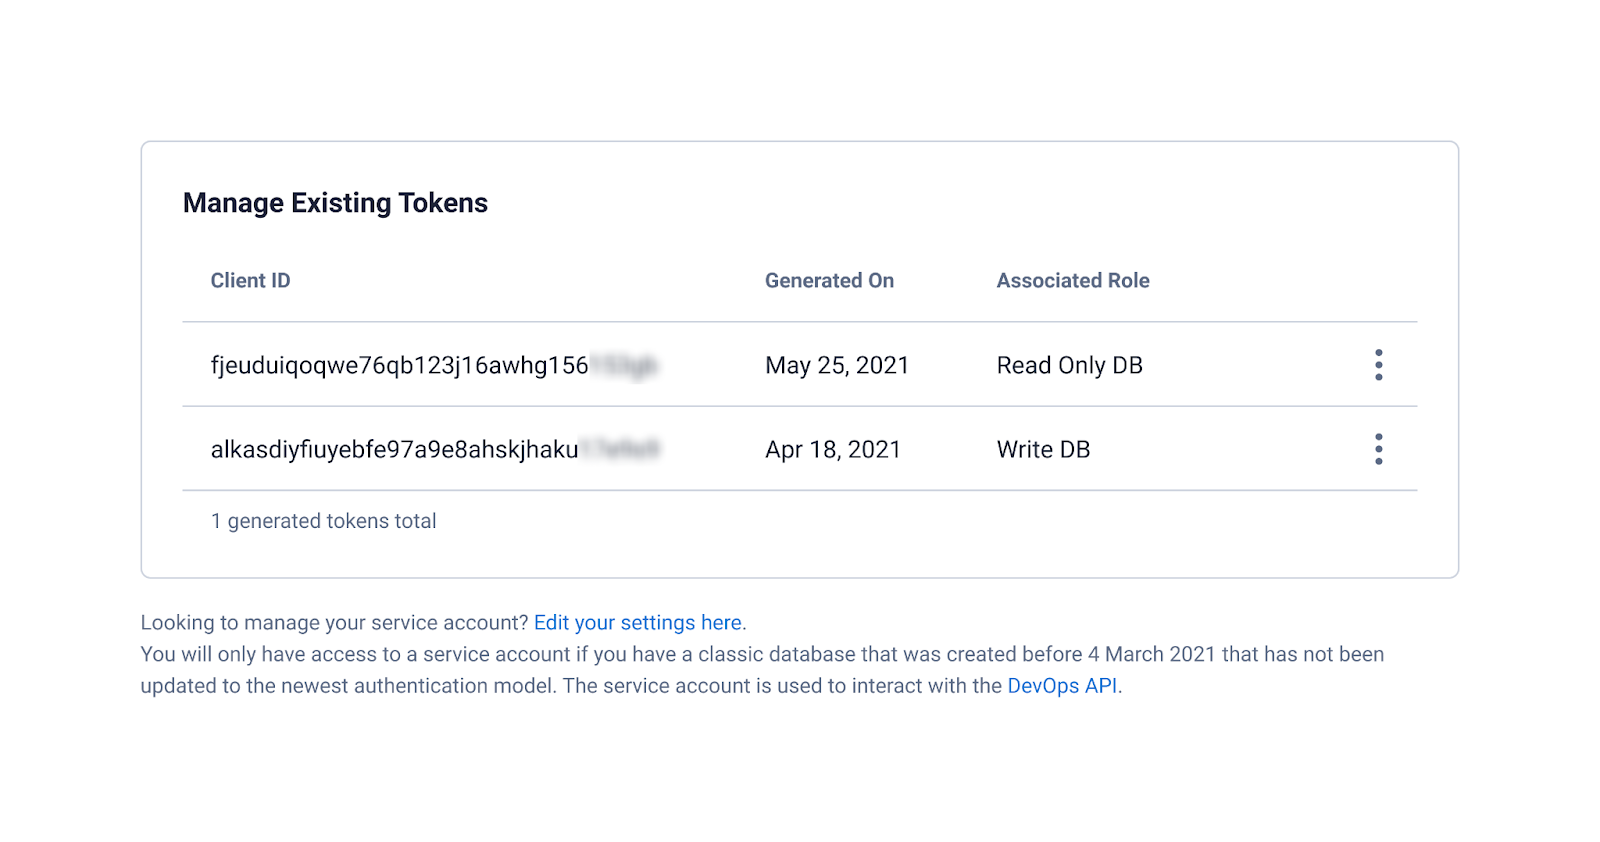 Manage existing tokens